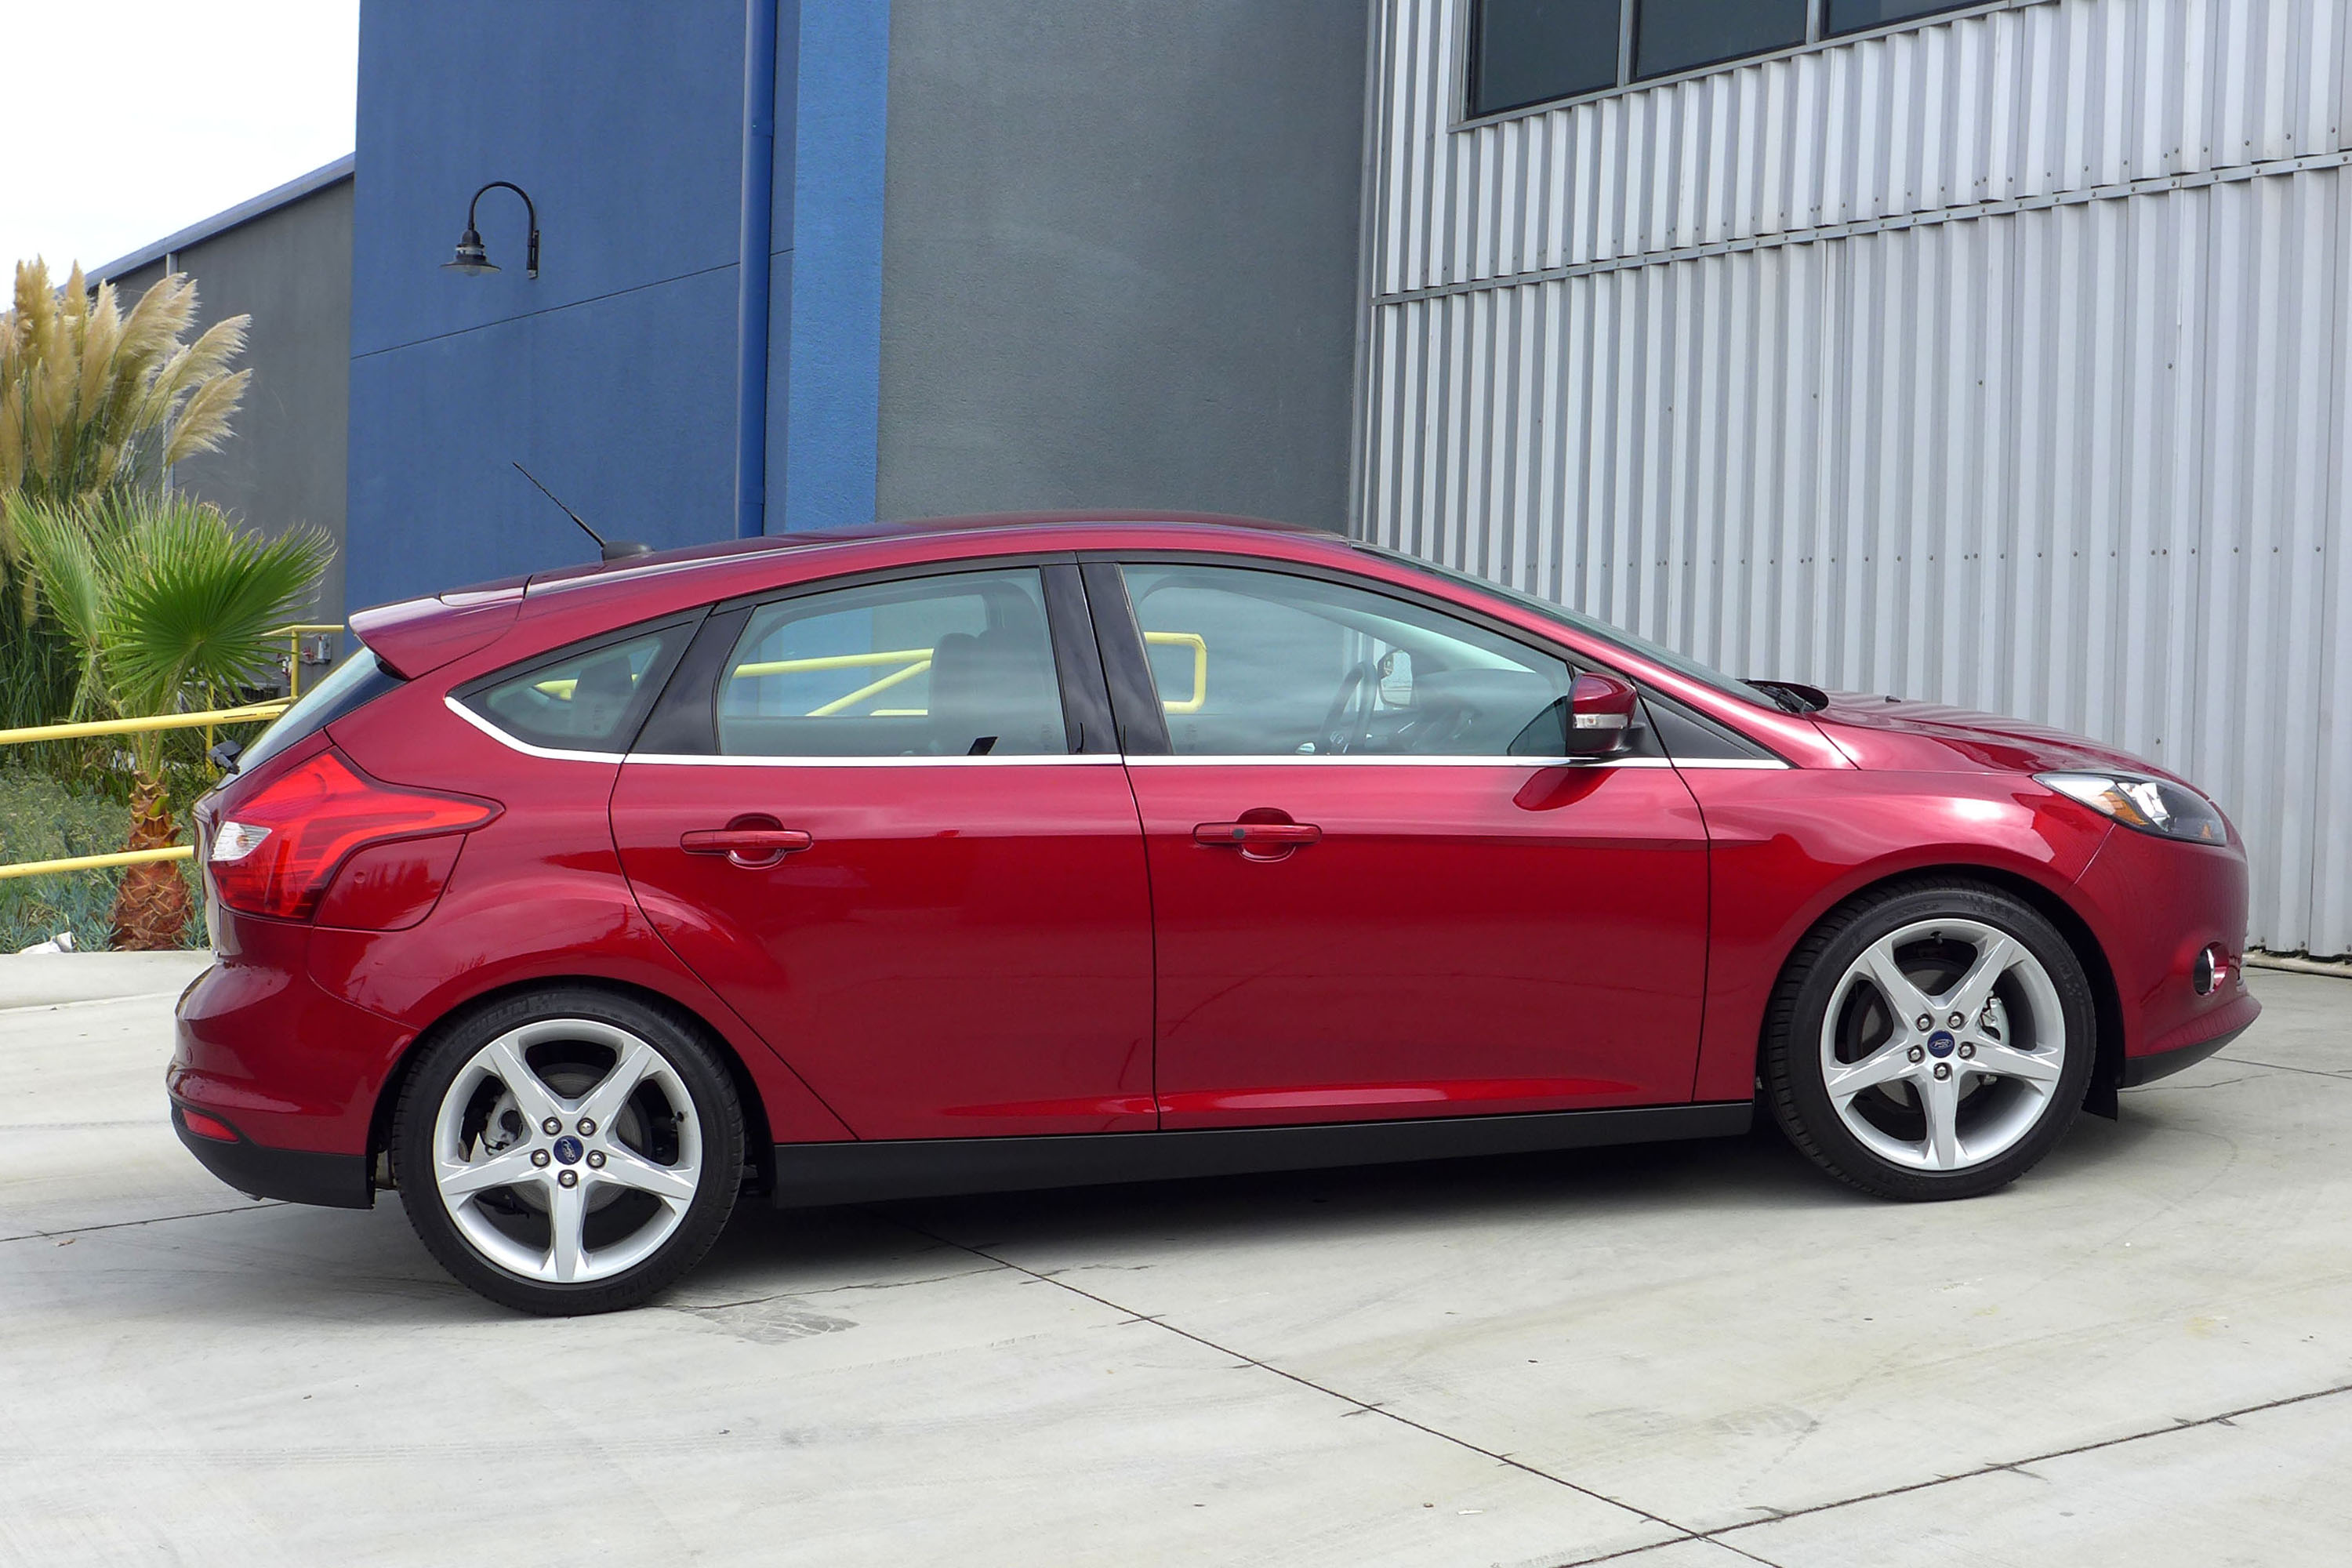 2014 ford focus titanium hatchback review price photos gayot. Cars Review. Best American Auto & Cars Review